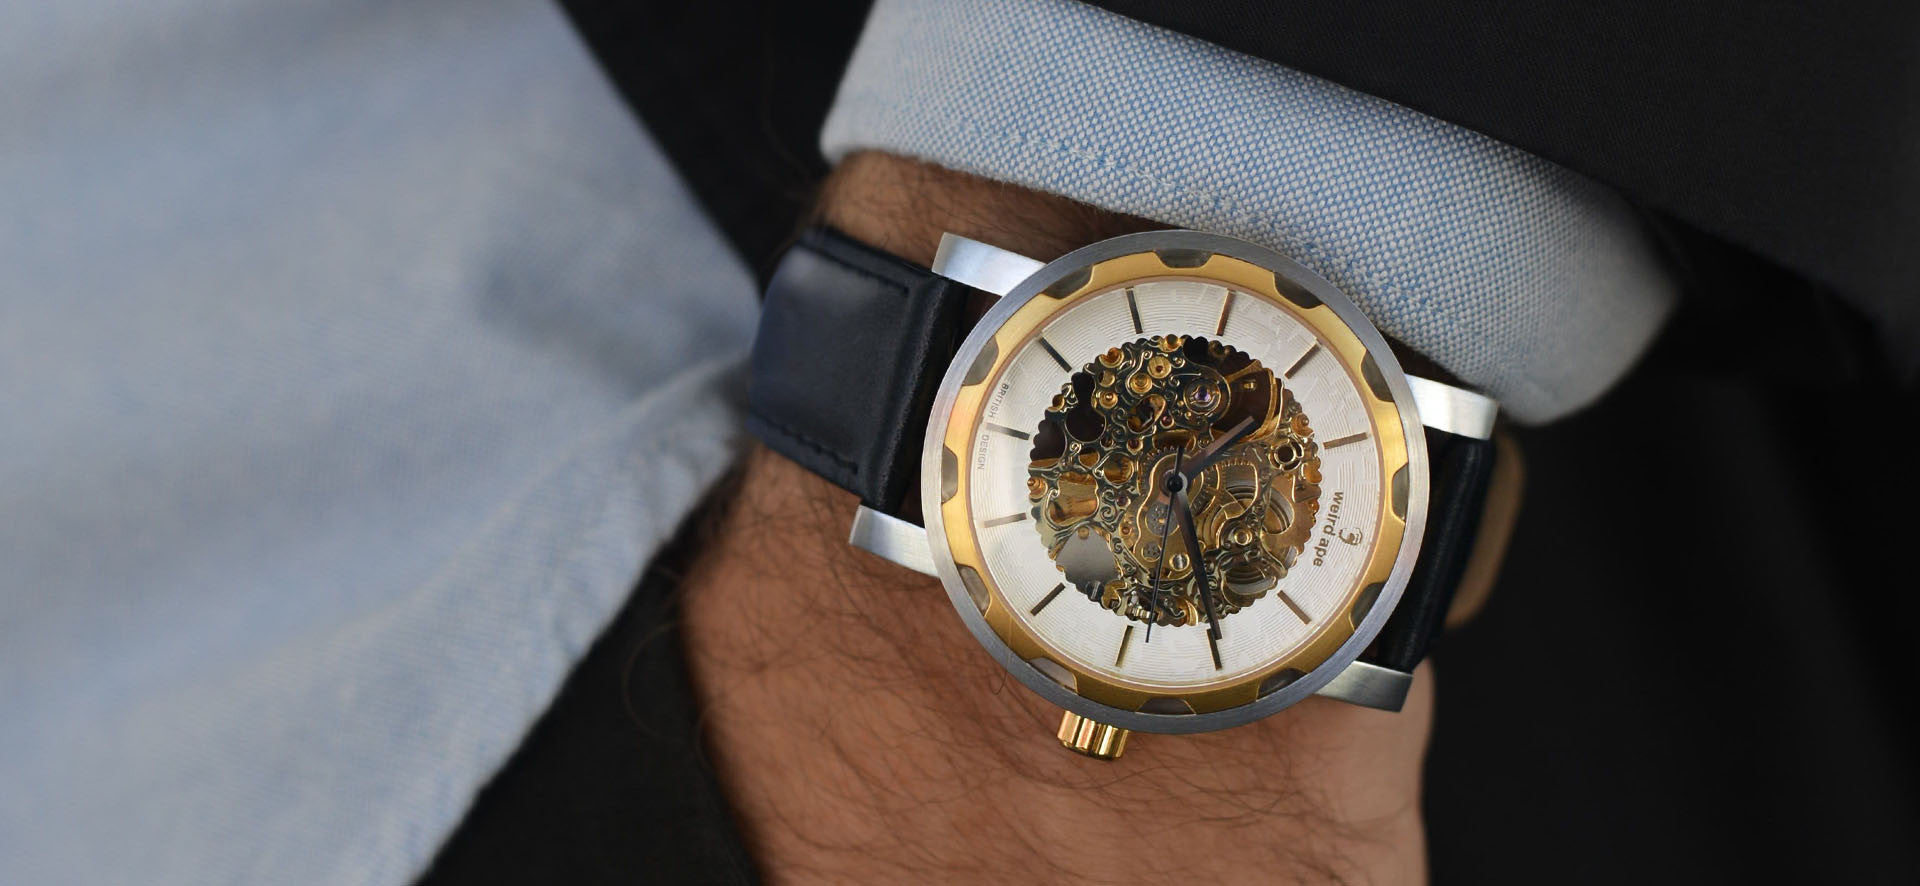 Gold skeleton watch with a black strap in a lifestyle image